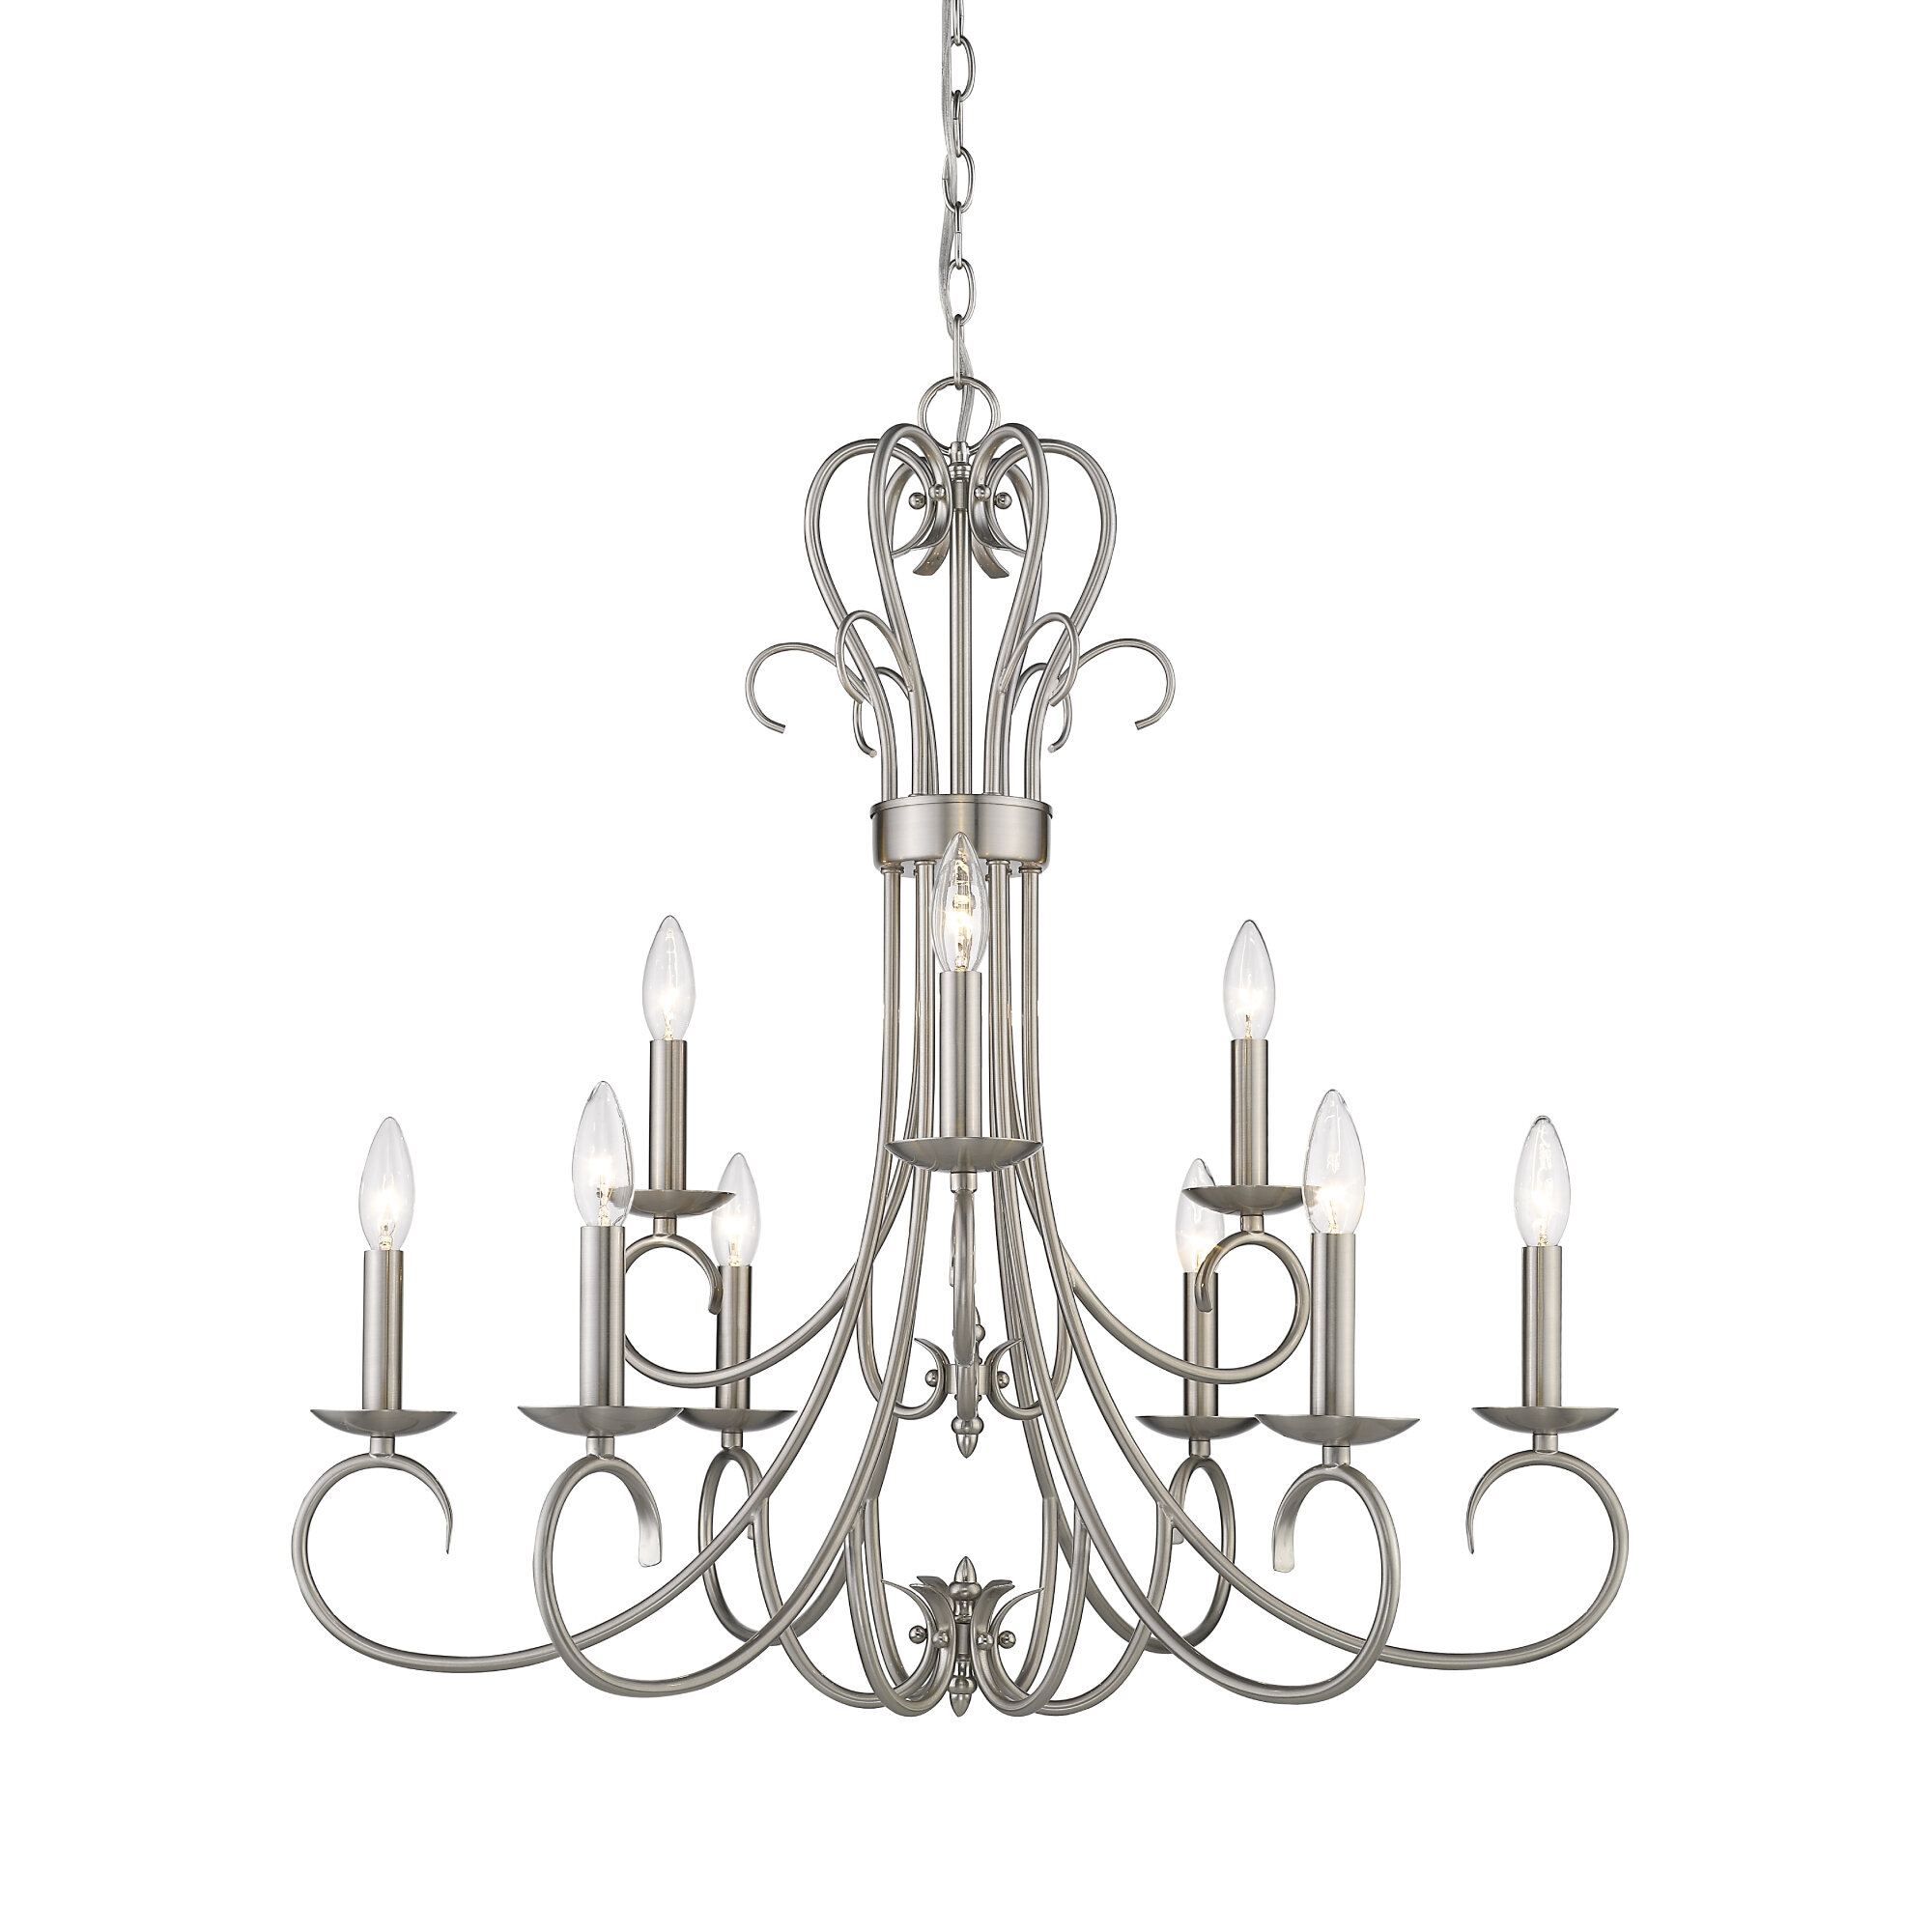 Alcott Hill Gaines 9 Light Candle Style Tiered Chandelier Reviews Wayfair